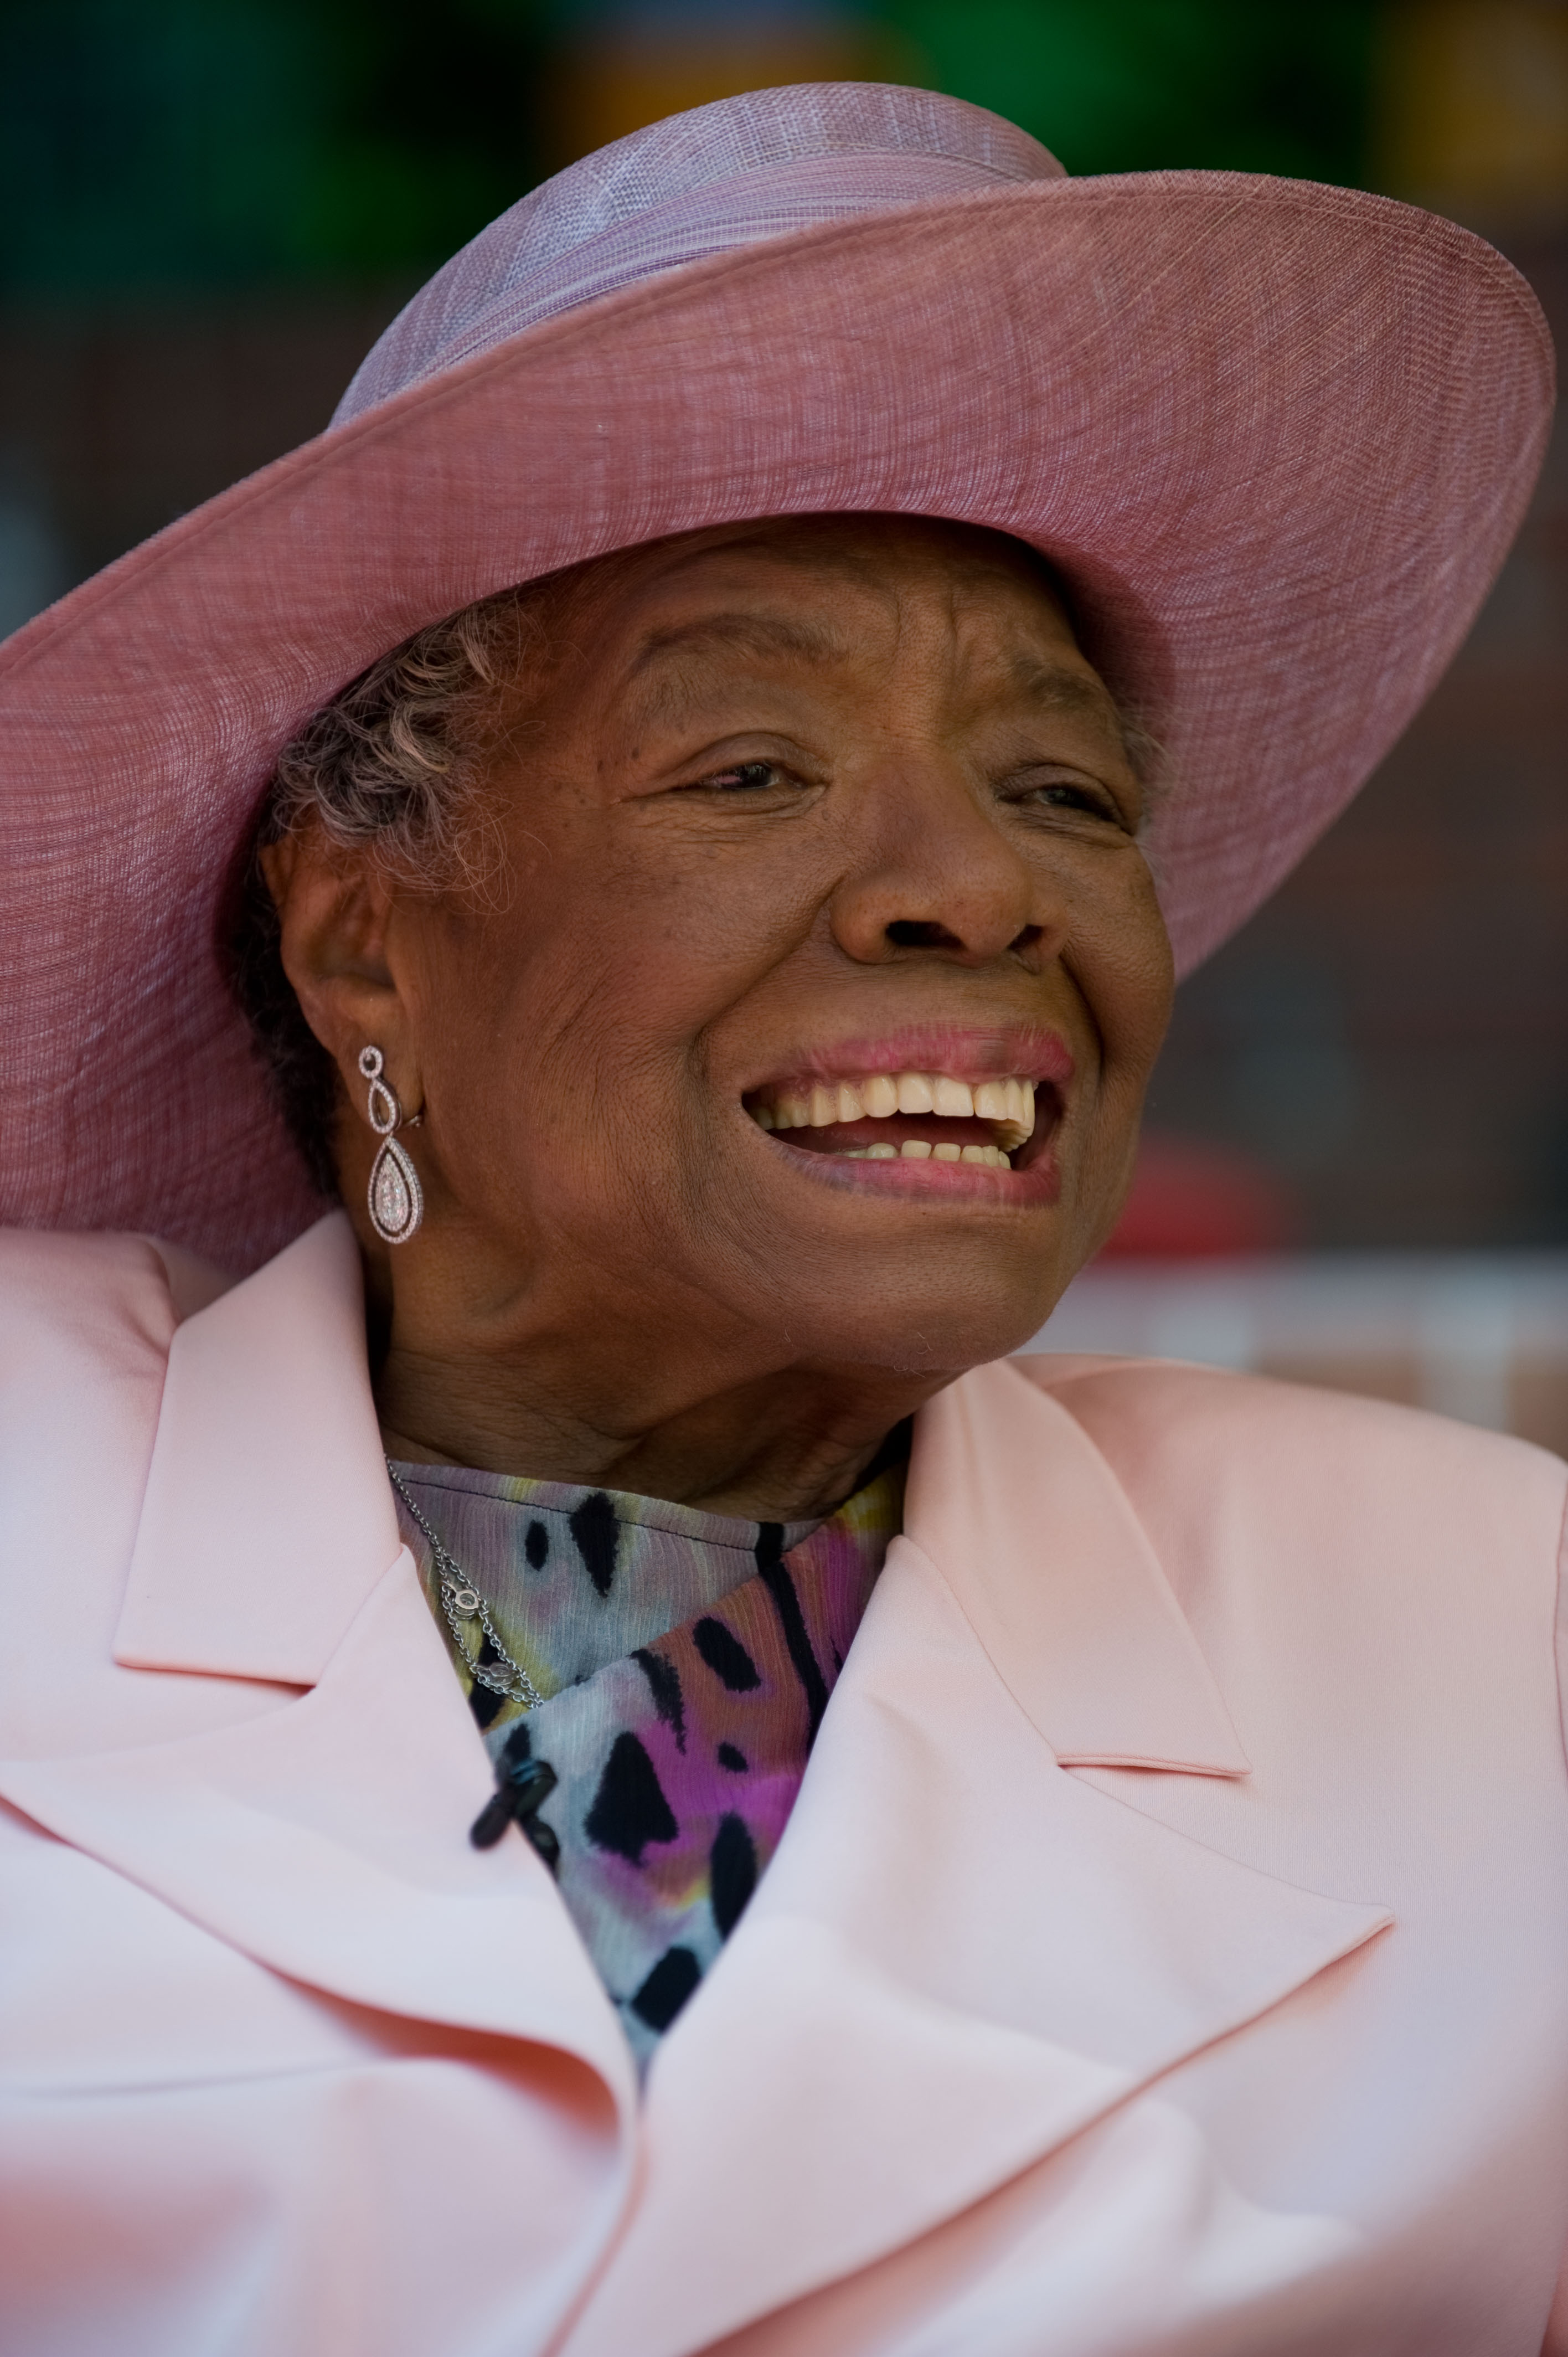 Maya Angelou at her 82nd birthday with friends and family in Winston-Salem, N.C. on May 20, 2010.